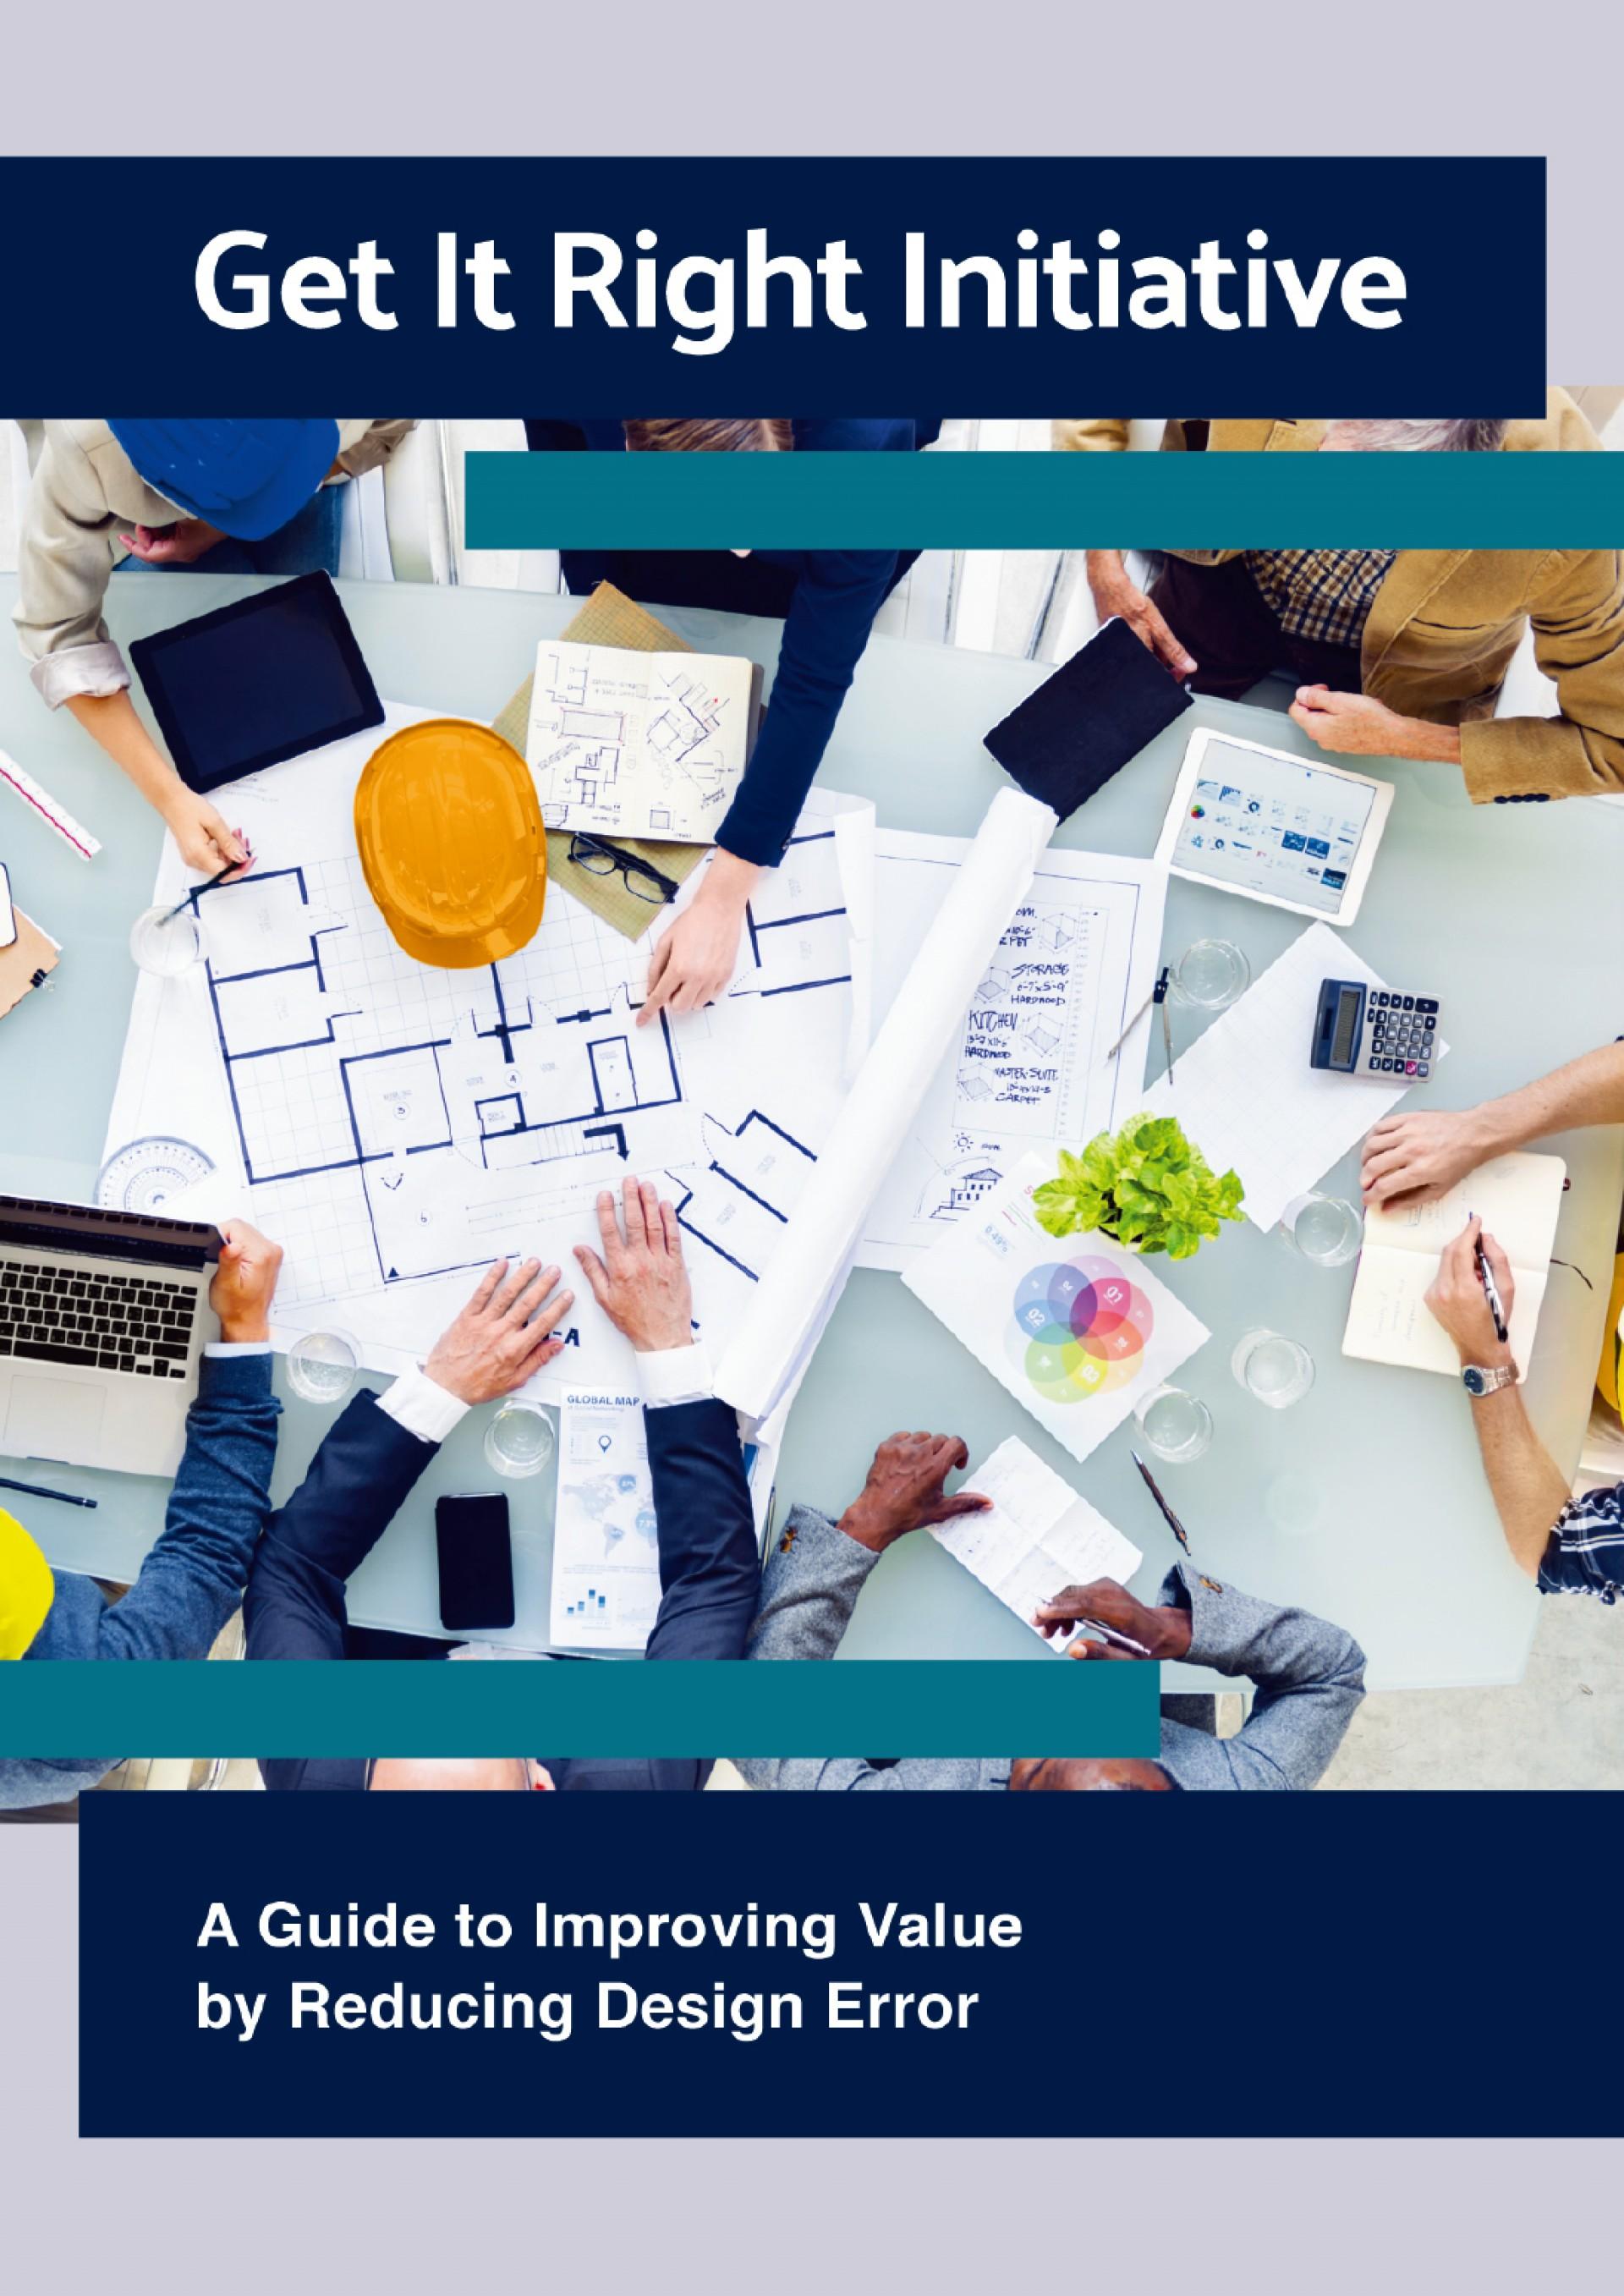 Guide to Improving Value by Reducing Design Error